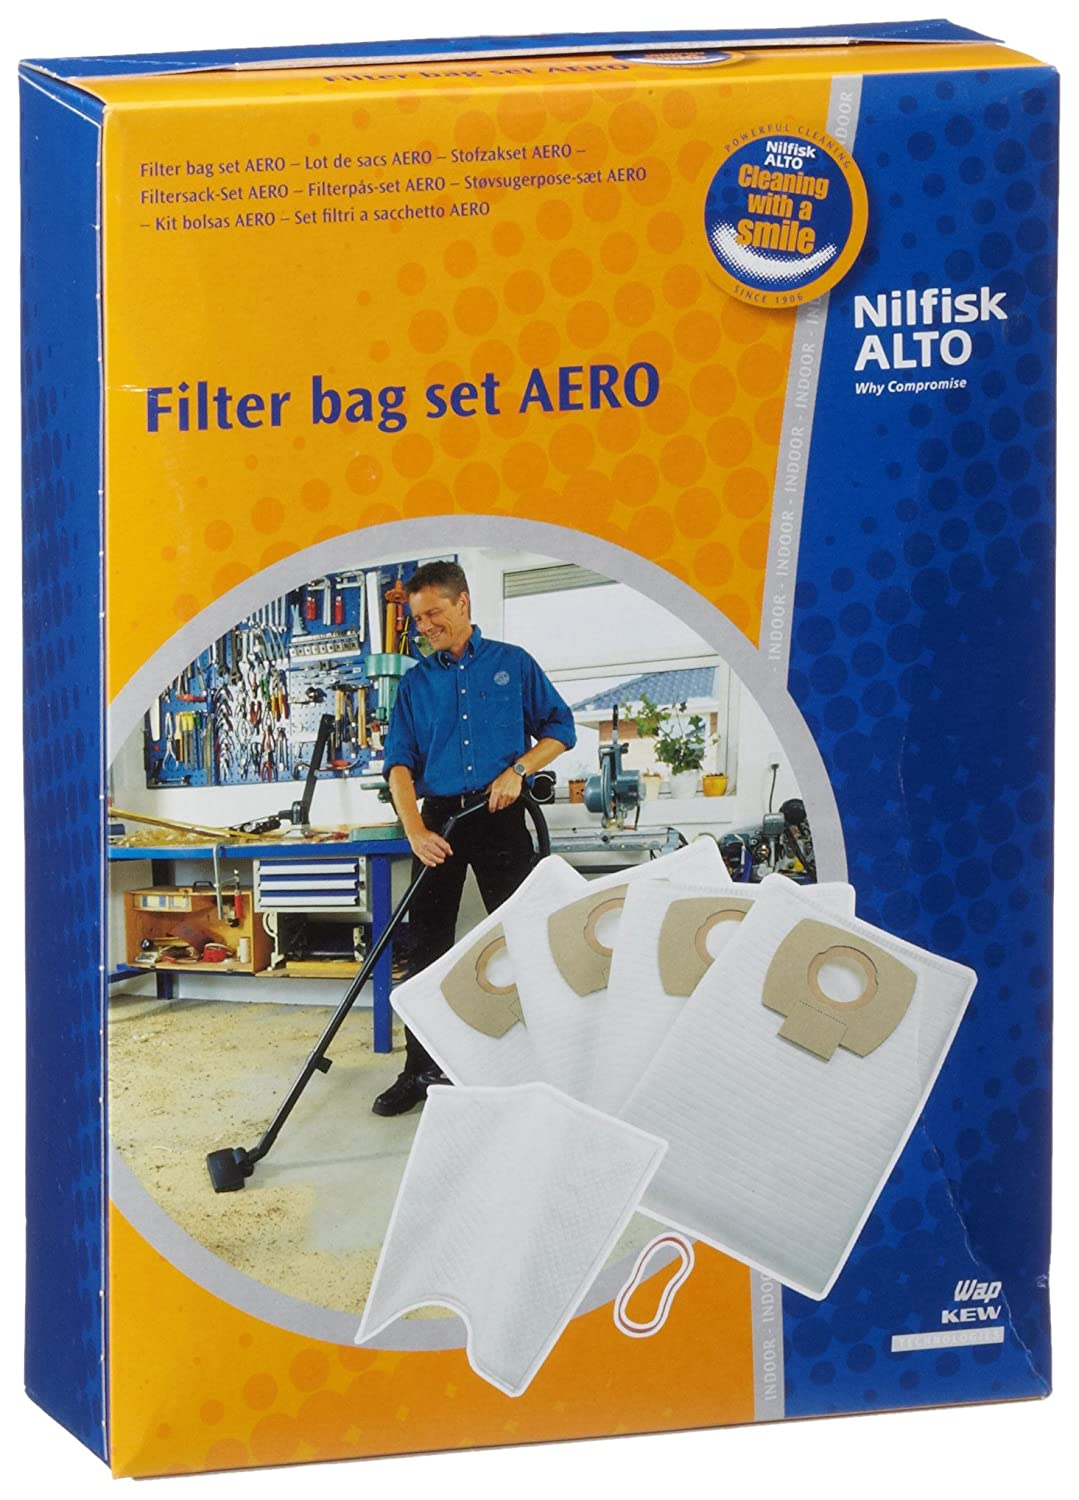 Nilfisk-Alto 4005337104816 Filter Bag Kit, Blue